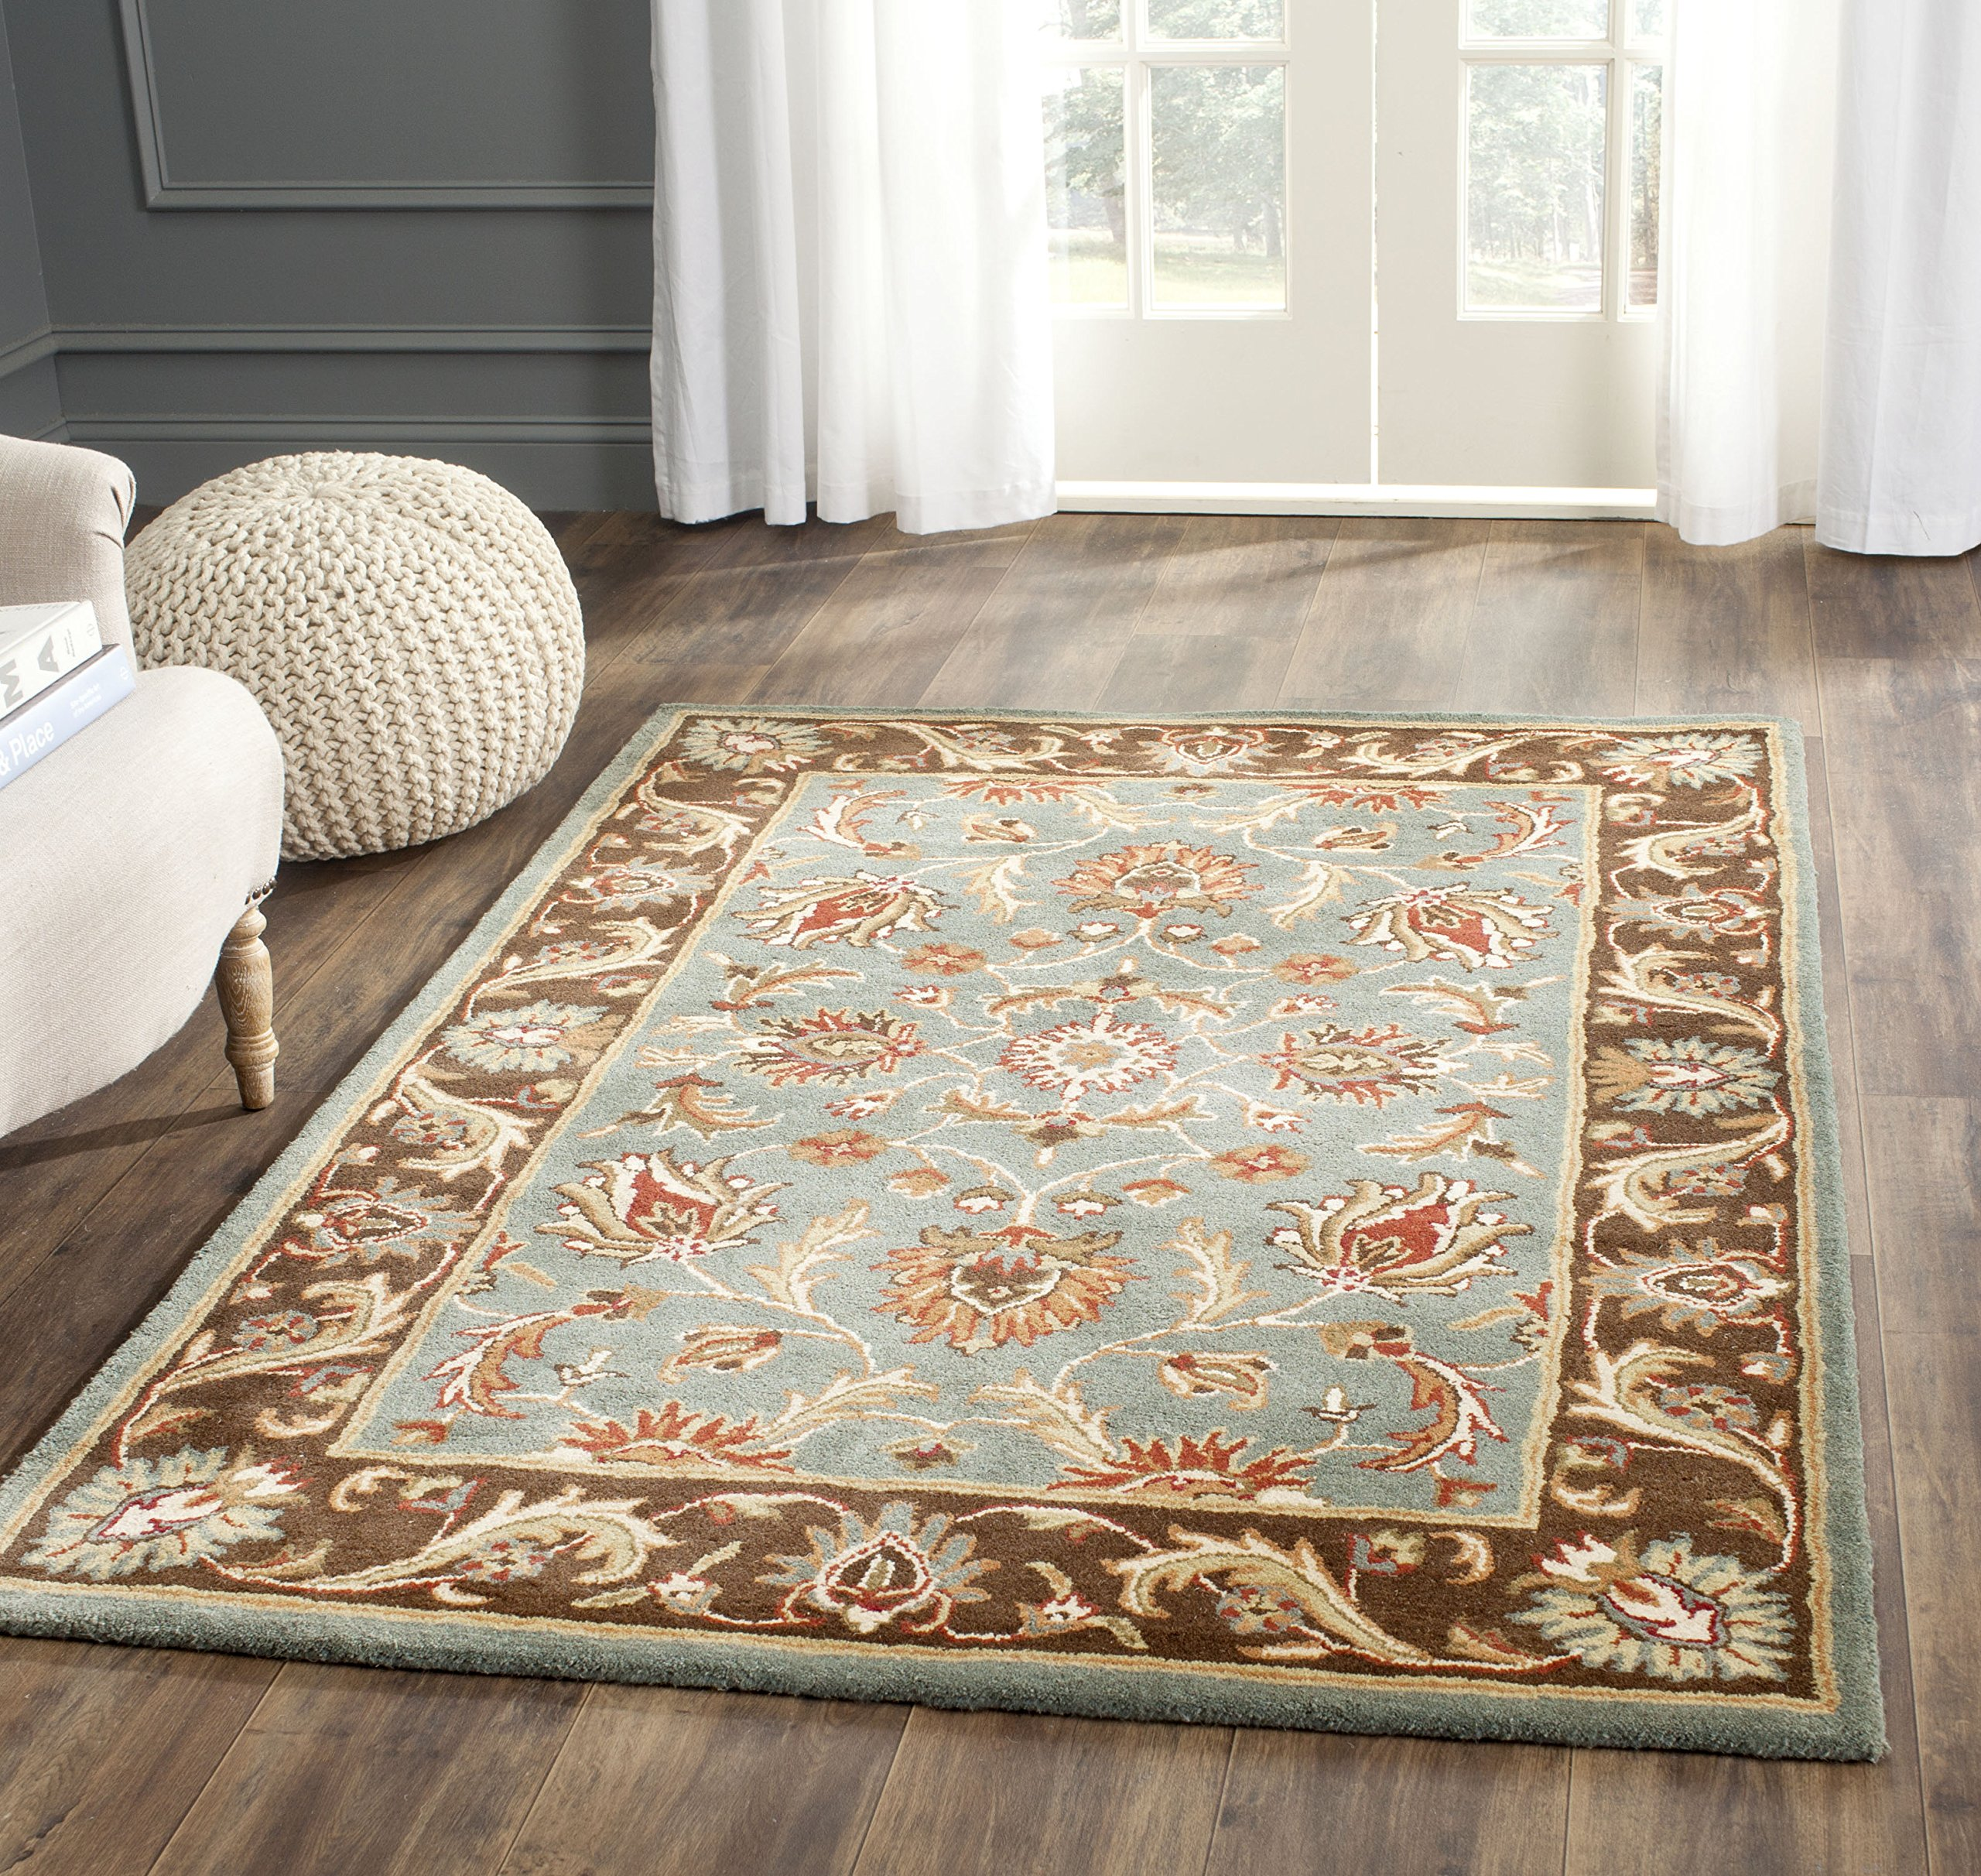 Safavieh Heritage Collection HG812B Handcrafted Traditional Oriental Blue and Brown Wool Area Rug (12' x 18')